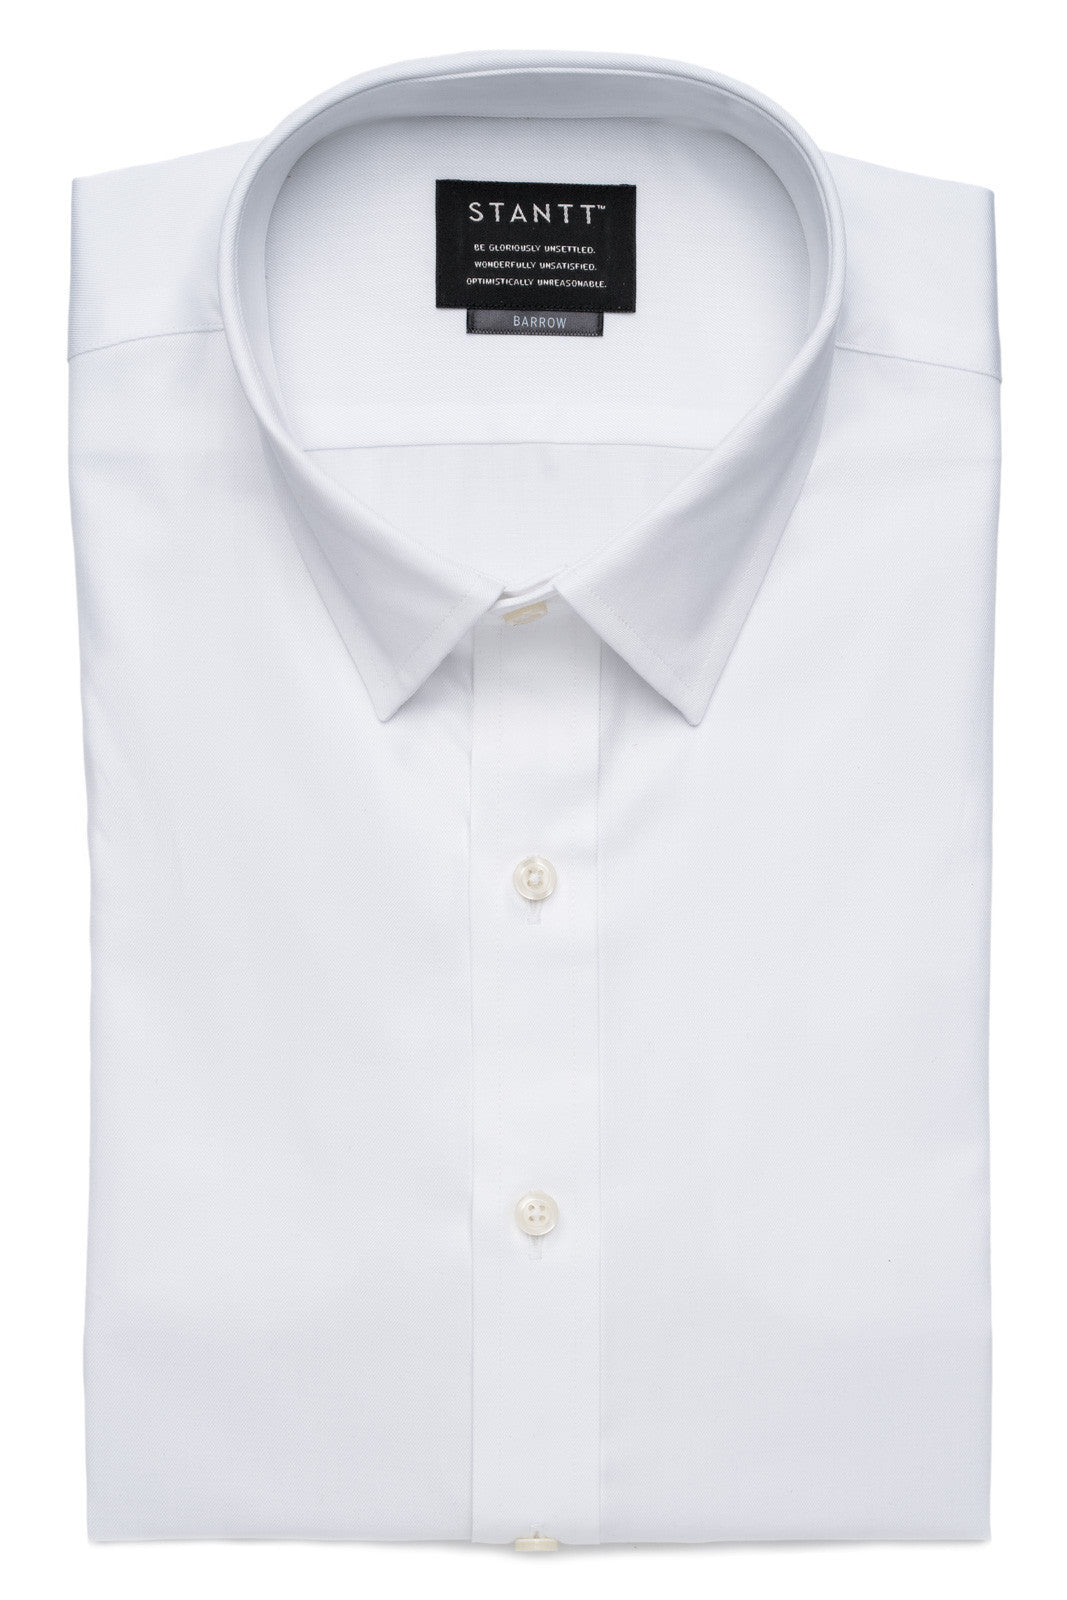 Fine White Twill: Modified Spread Collar, French Cuff